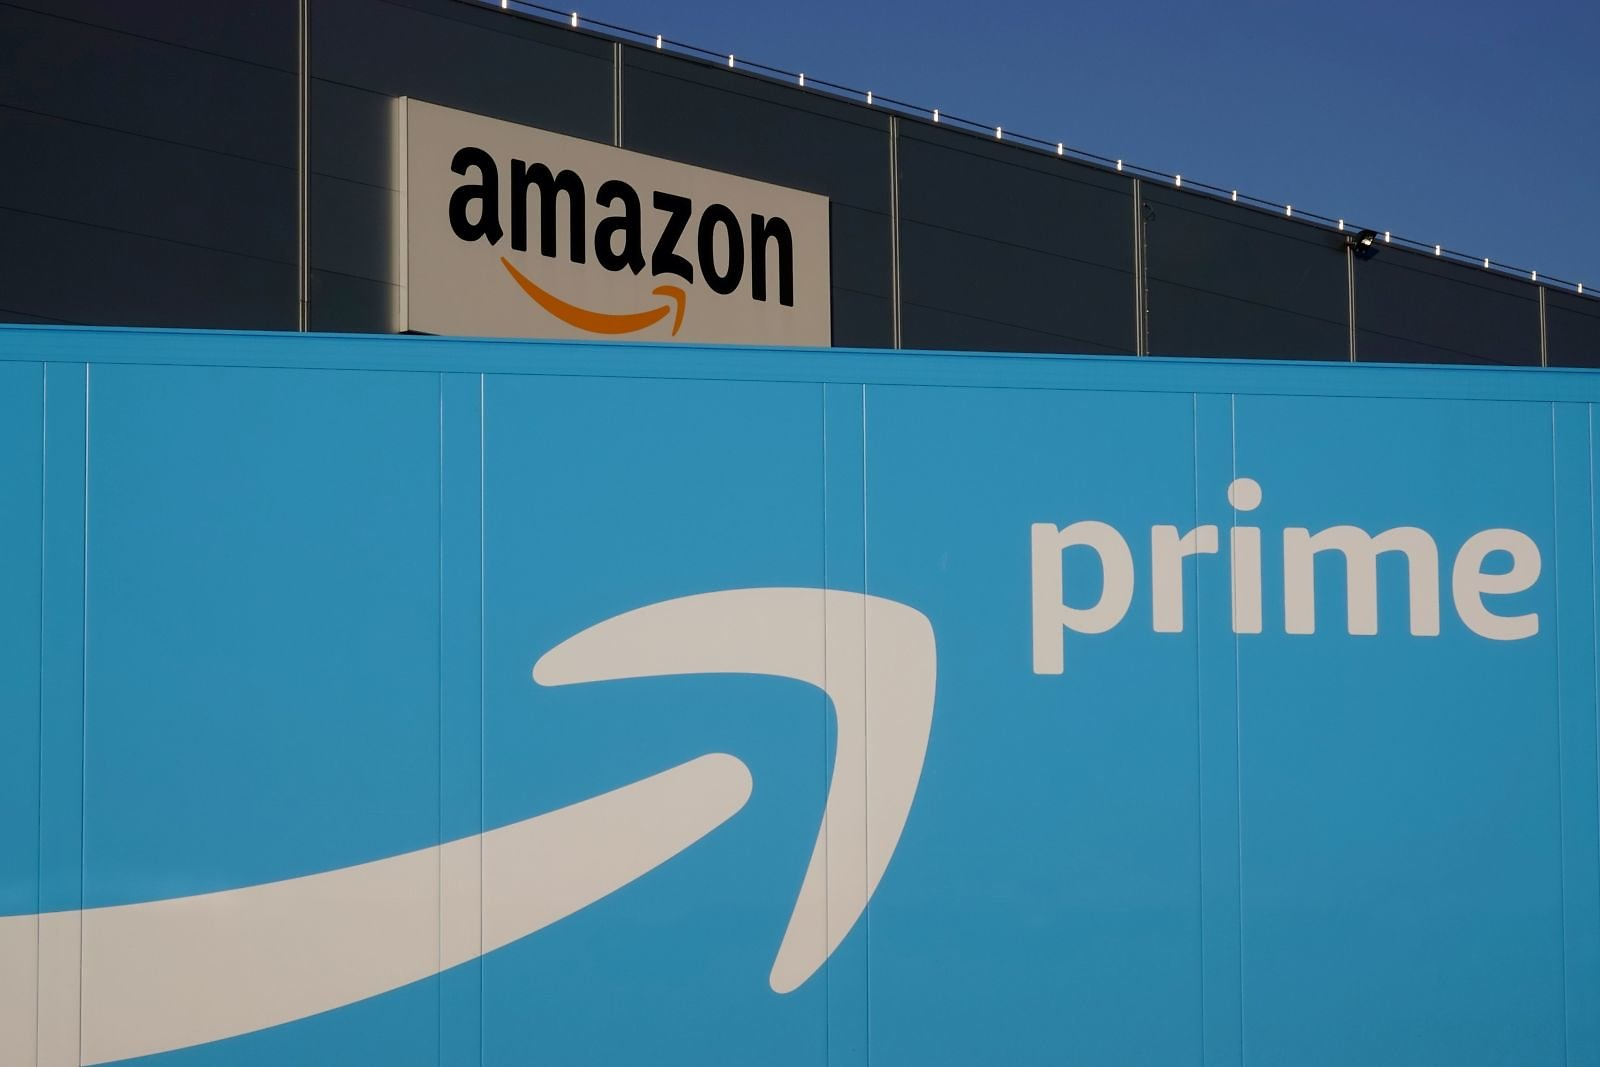 Amazon Customers Are Less Happy with The Service Despite a Massive Boost from Coronavirus Lockdowns